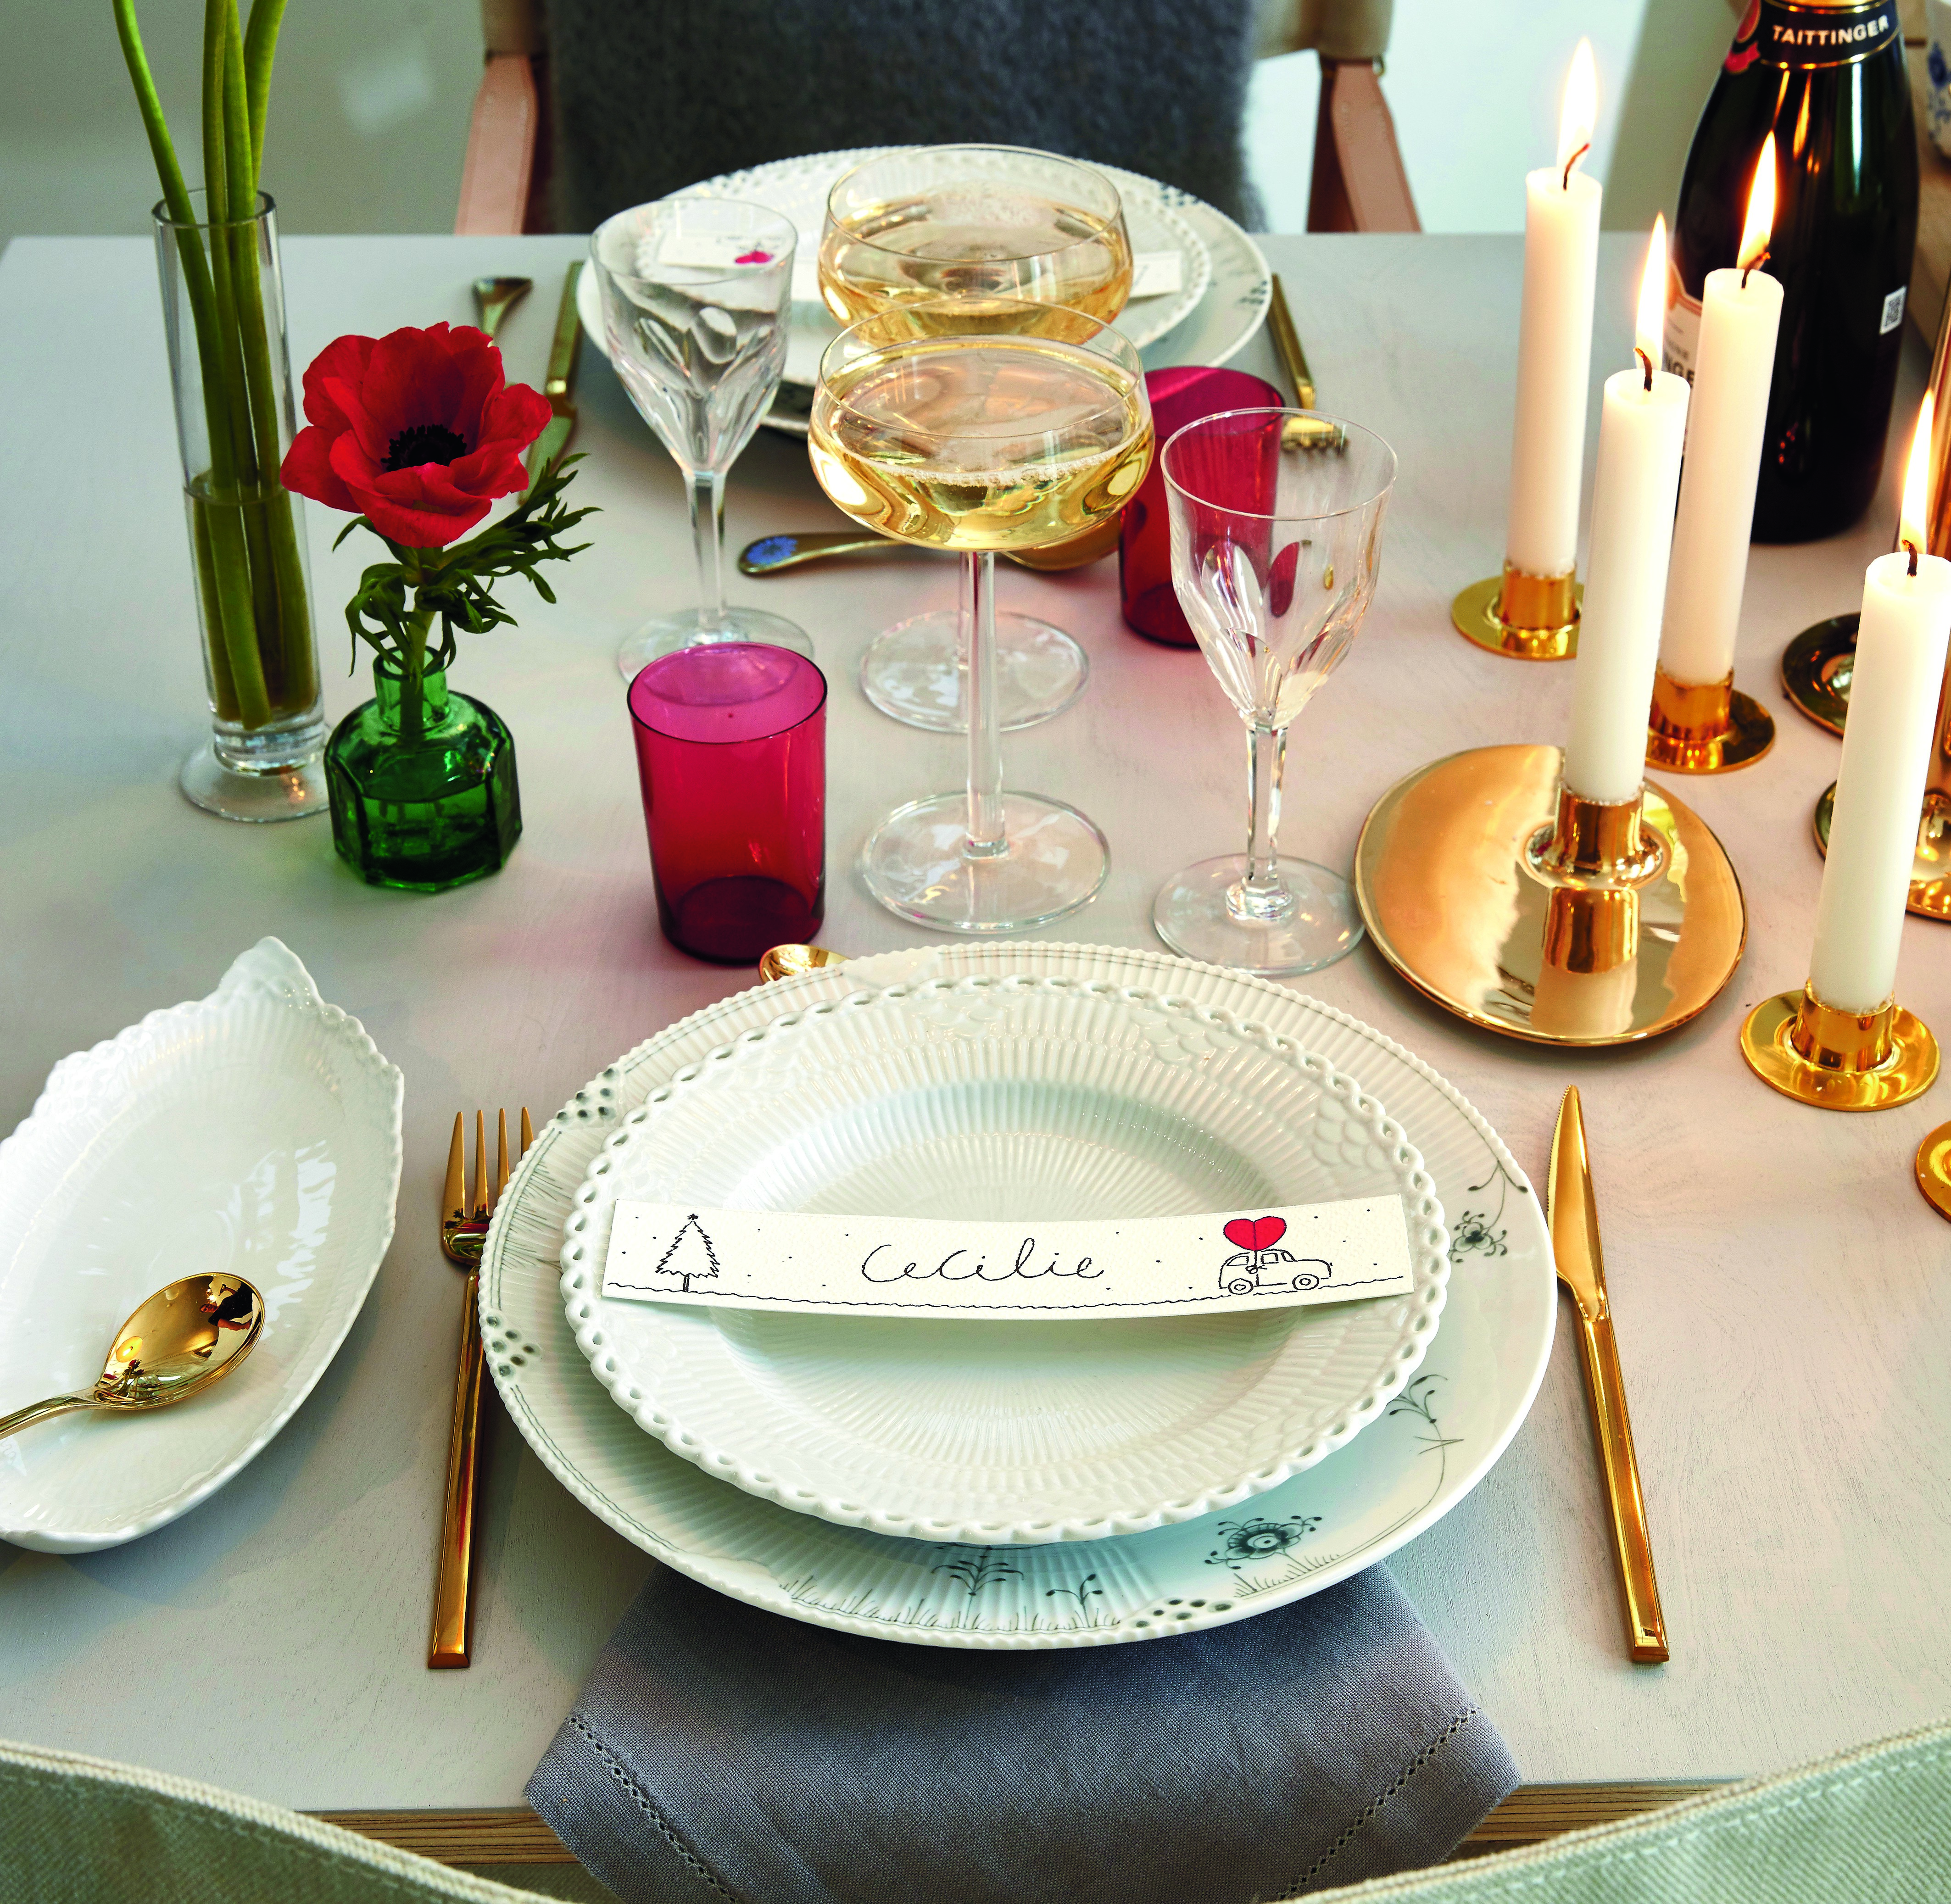 fashionable Christmas - Christmas in the atelier is Cecilie Bahnsen's holiday and work combination fantasy using White Flute Half Lace China with pieces from the Elements collection - Royal Copenhagen via Atticmag